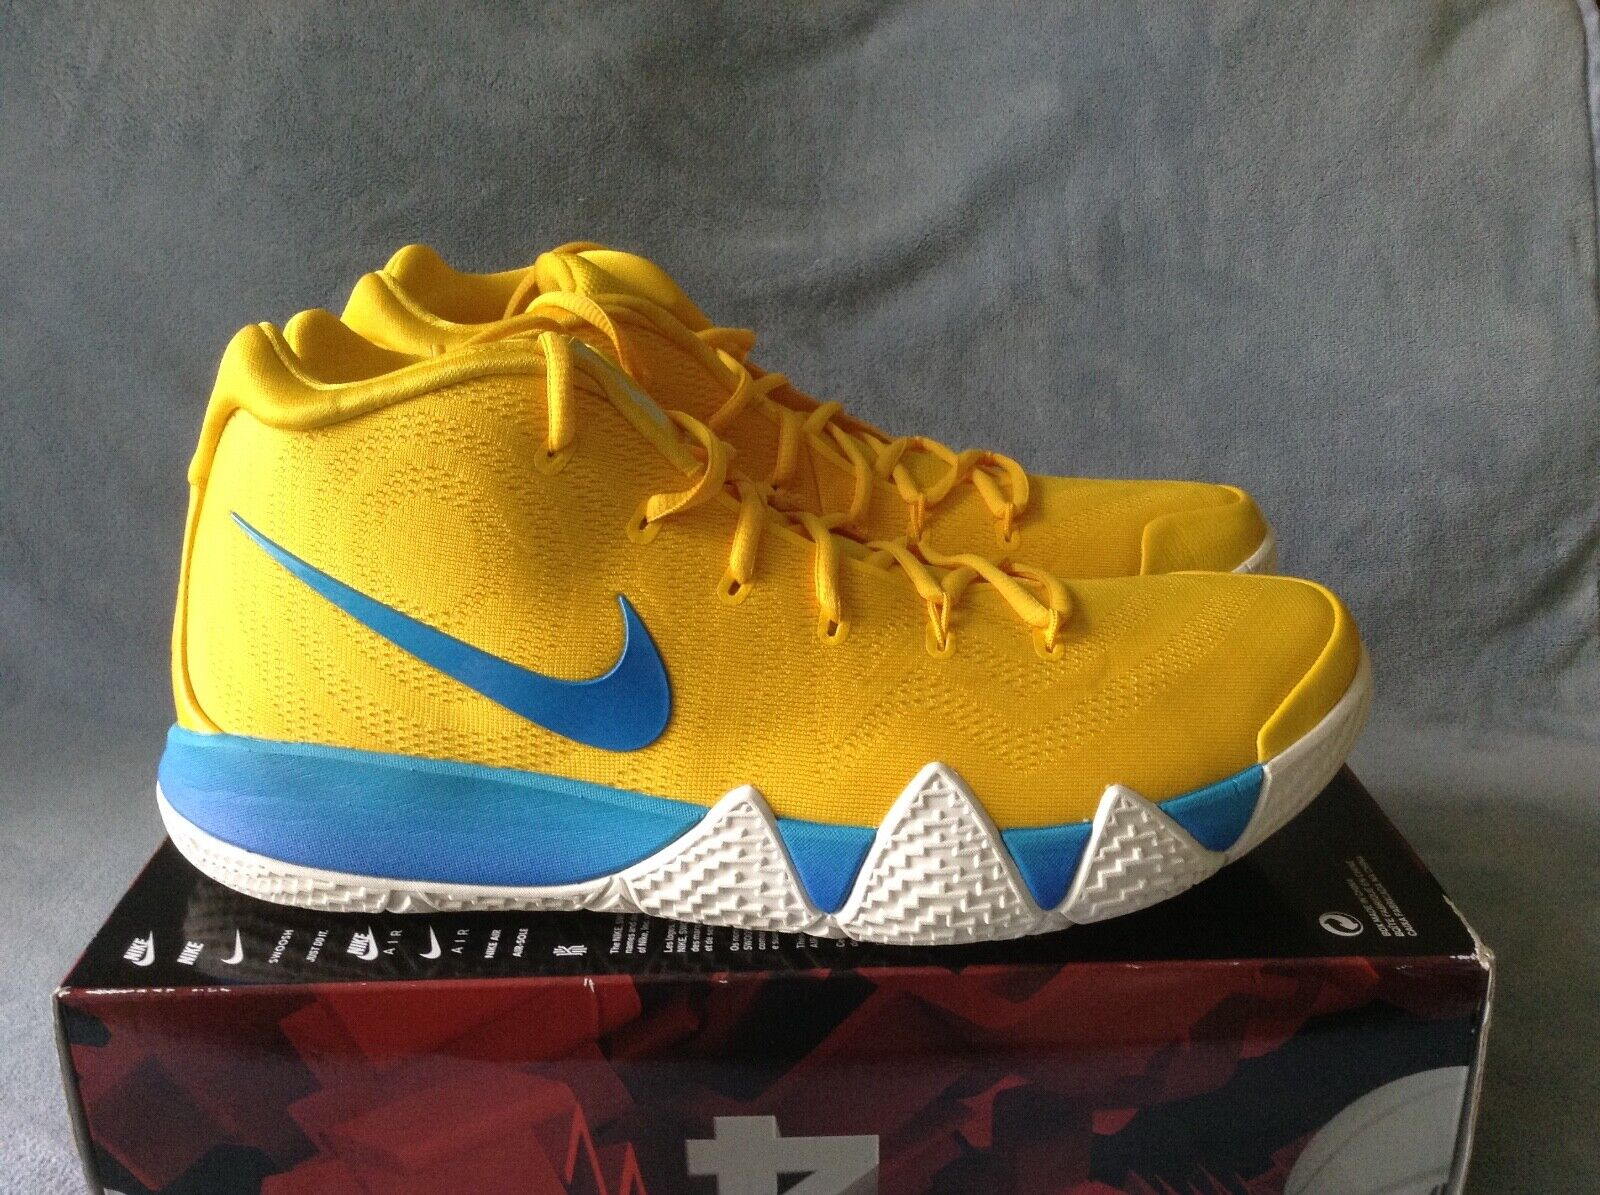 Nike Kyrie 4 Kix Cereal yellow BV0425-700 Size 14